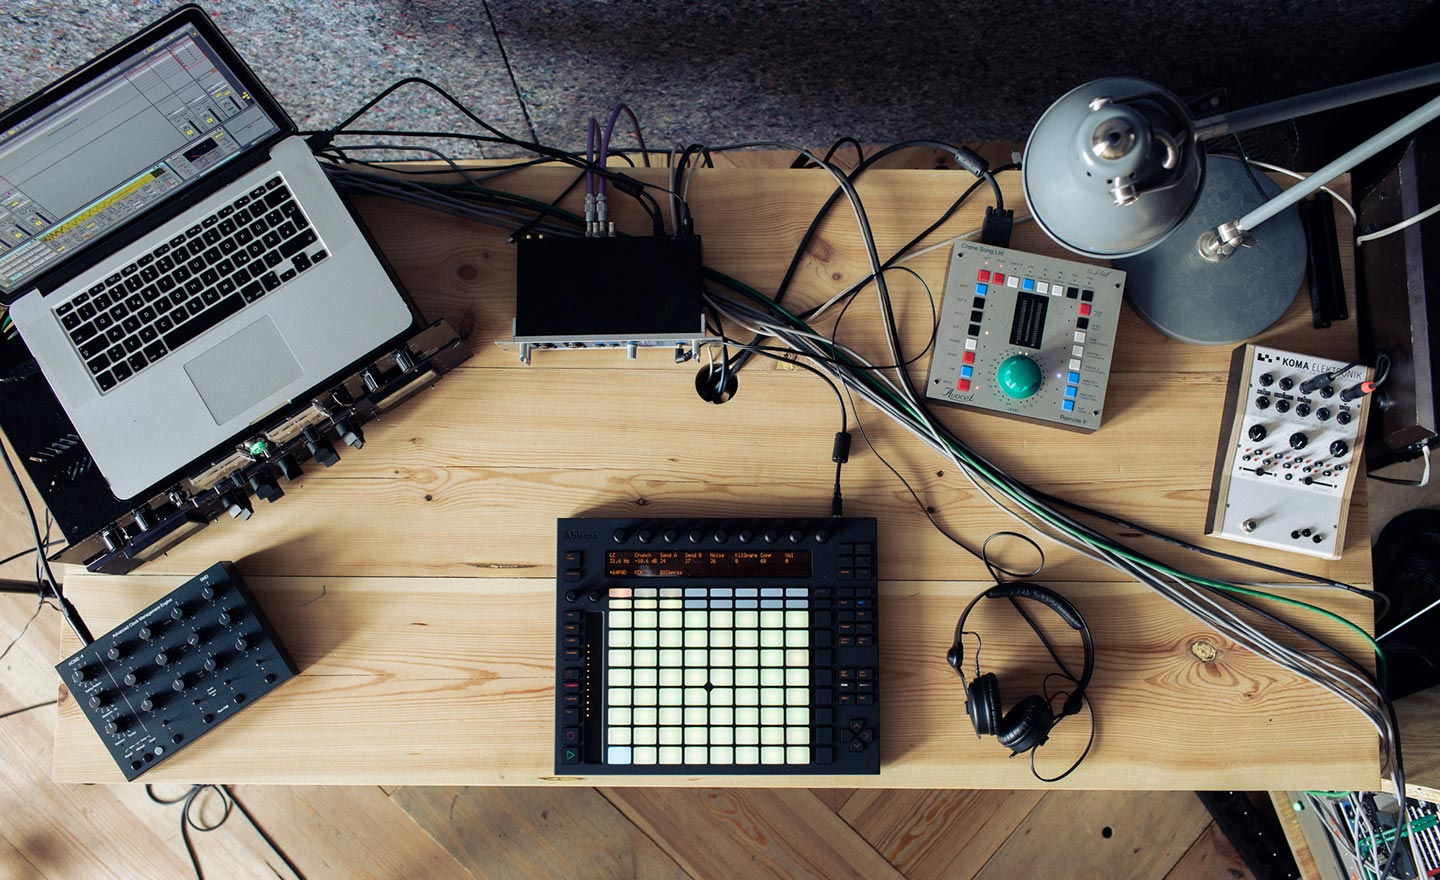 Ableton Live 9 2 released + Free 64 Pad Lab pack